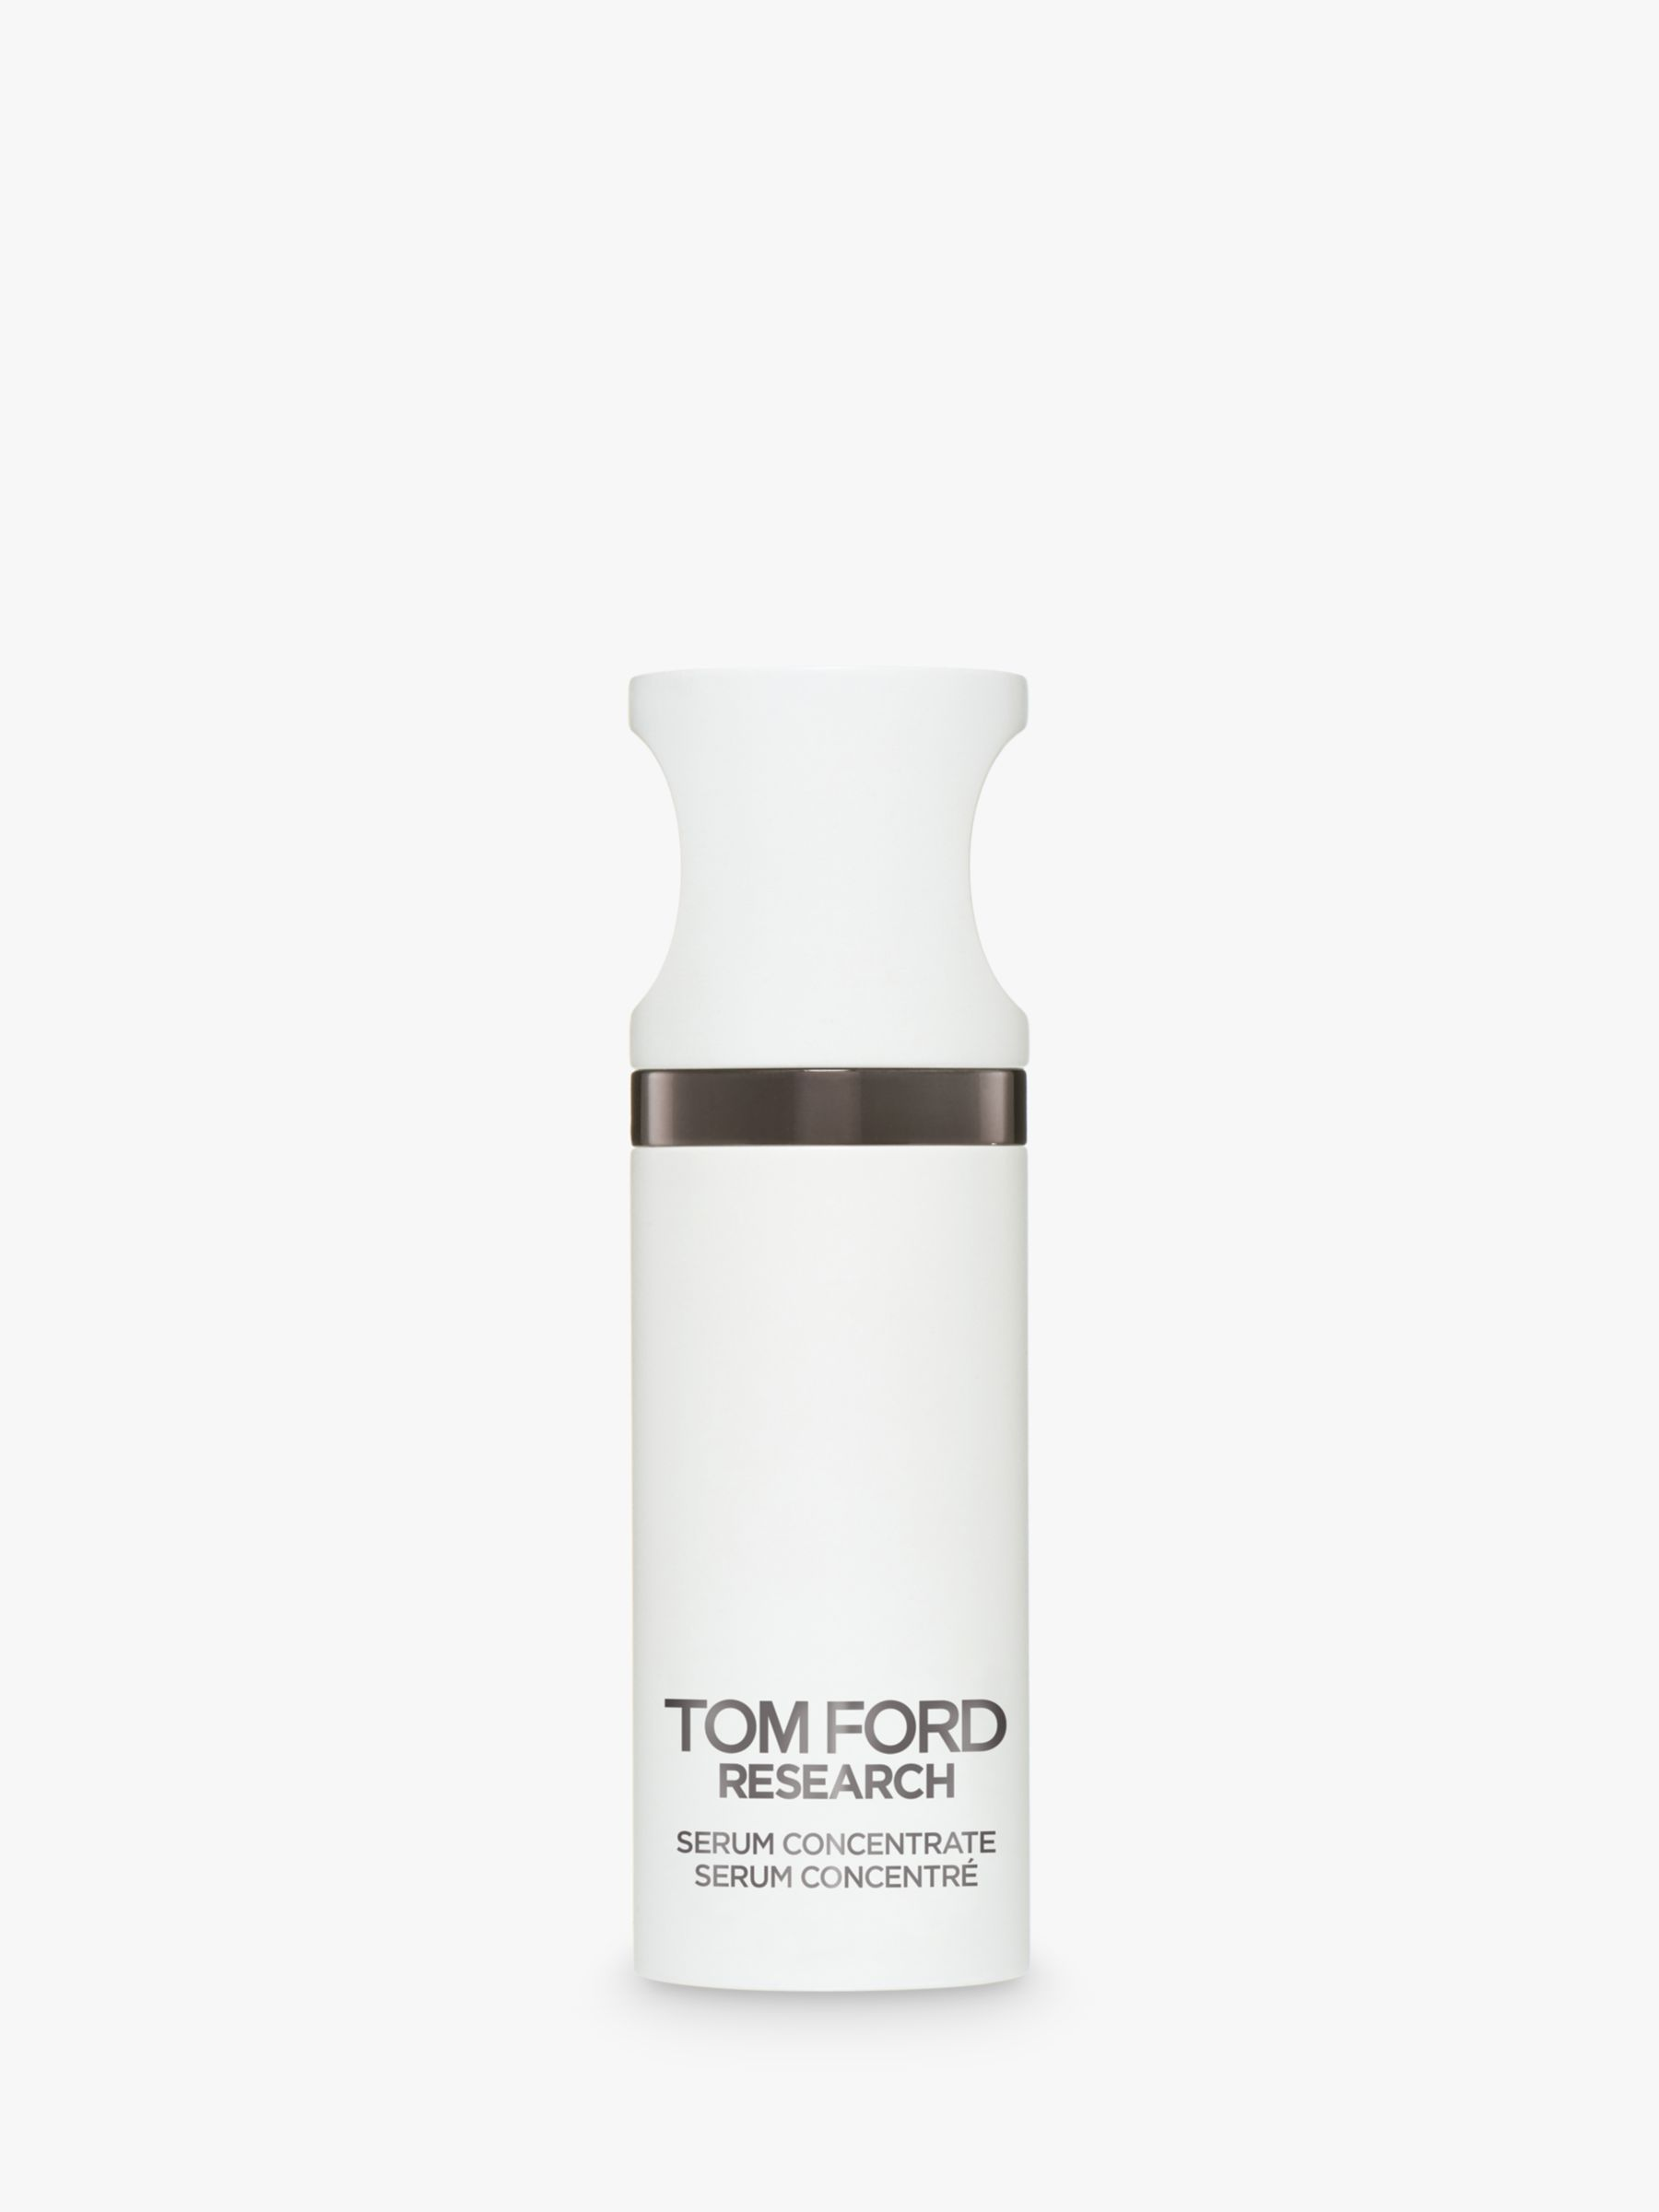 Tom Ford TOM FORD Research Serum Concentrate, 20ml